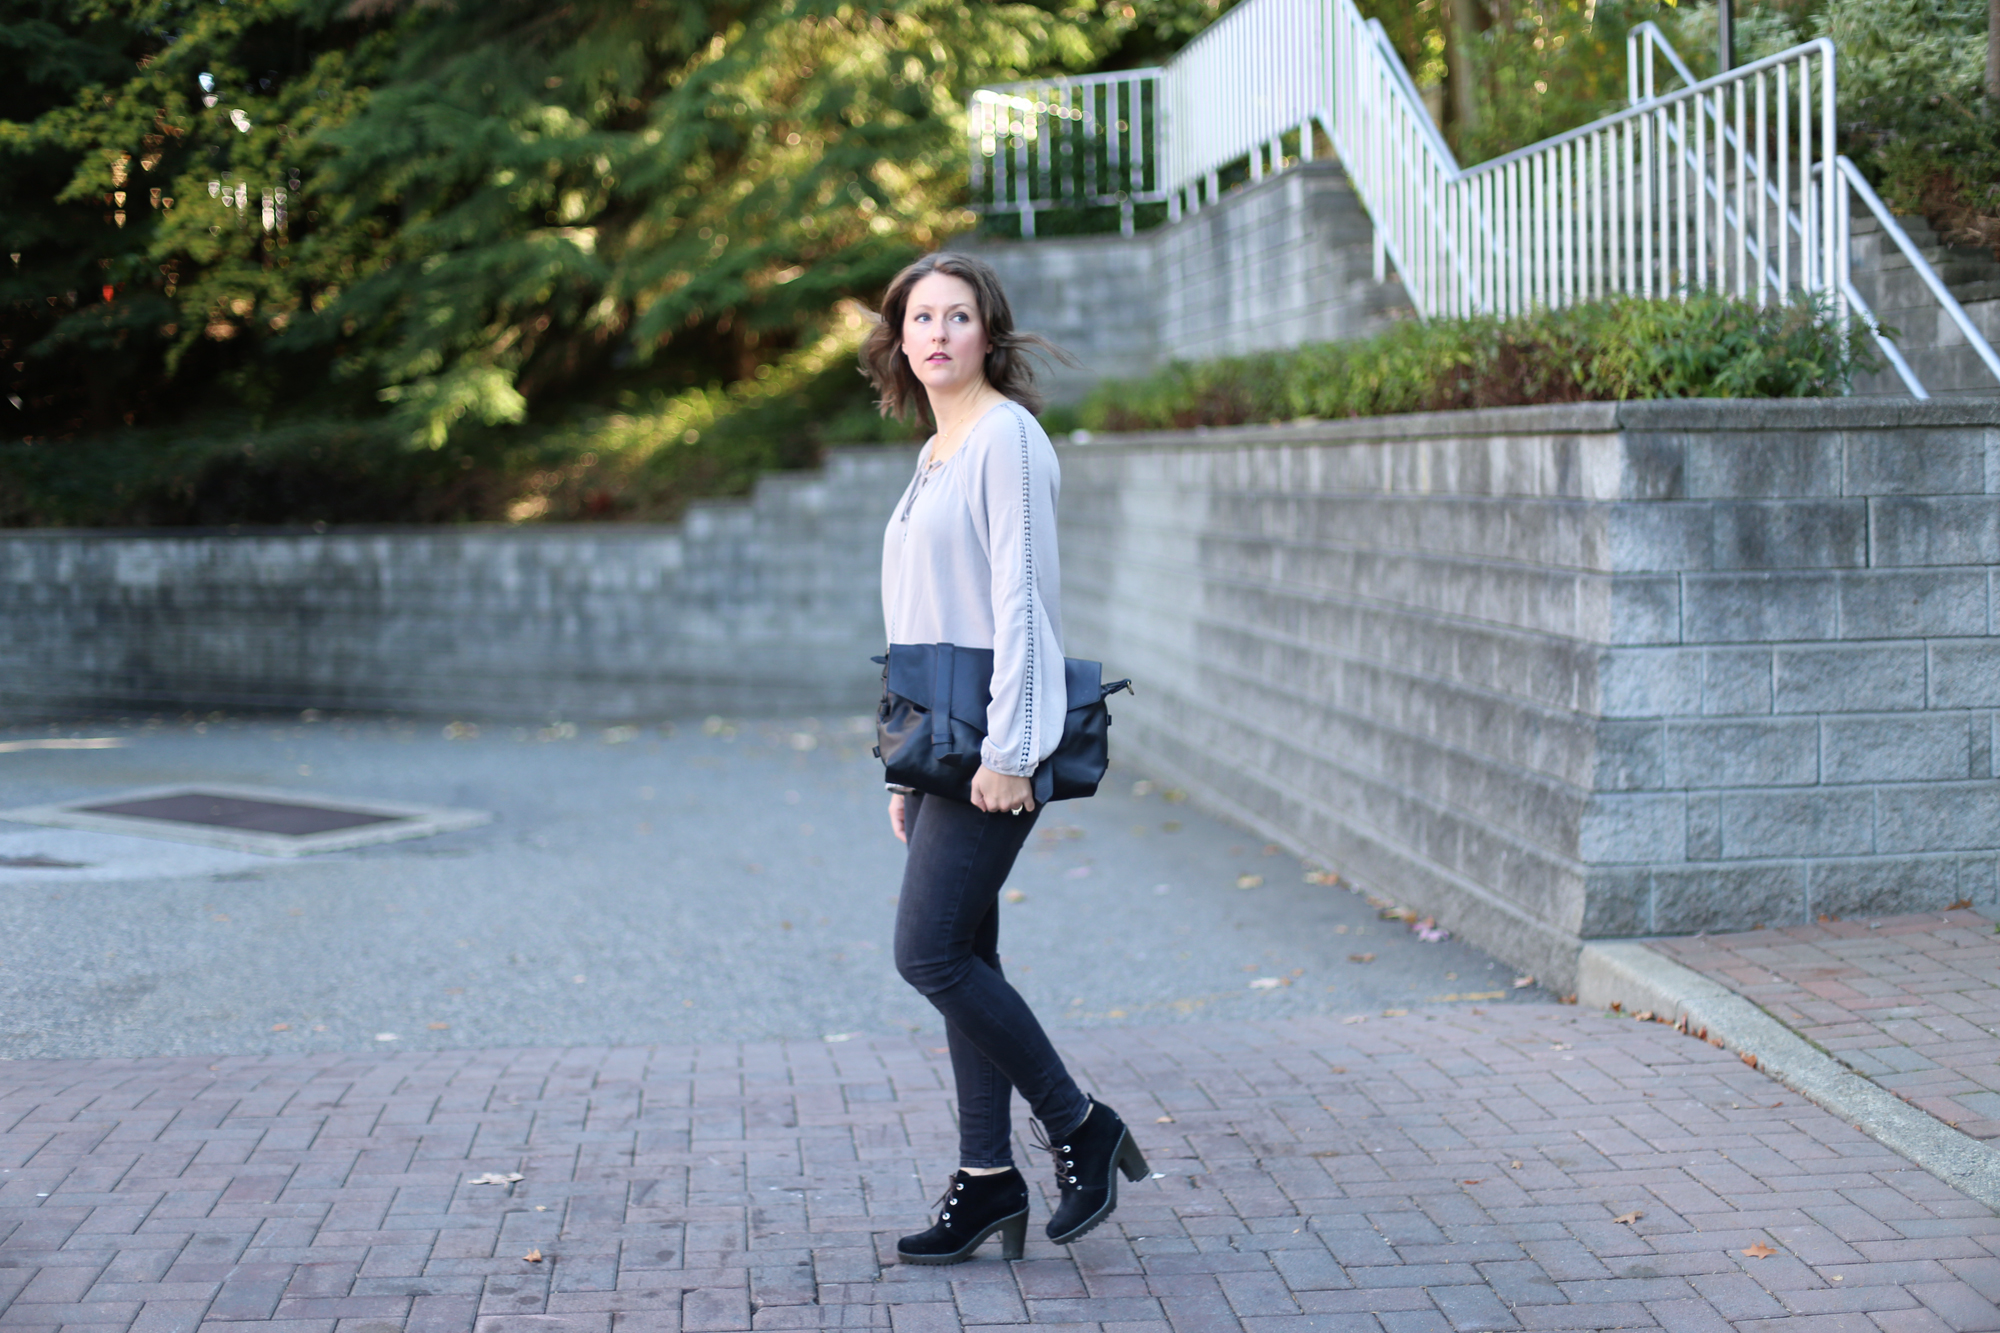 Super chic, minimalist street style outfit. Flowy blouse, black leather bag, black nails, and black skinny jeans.